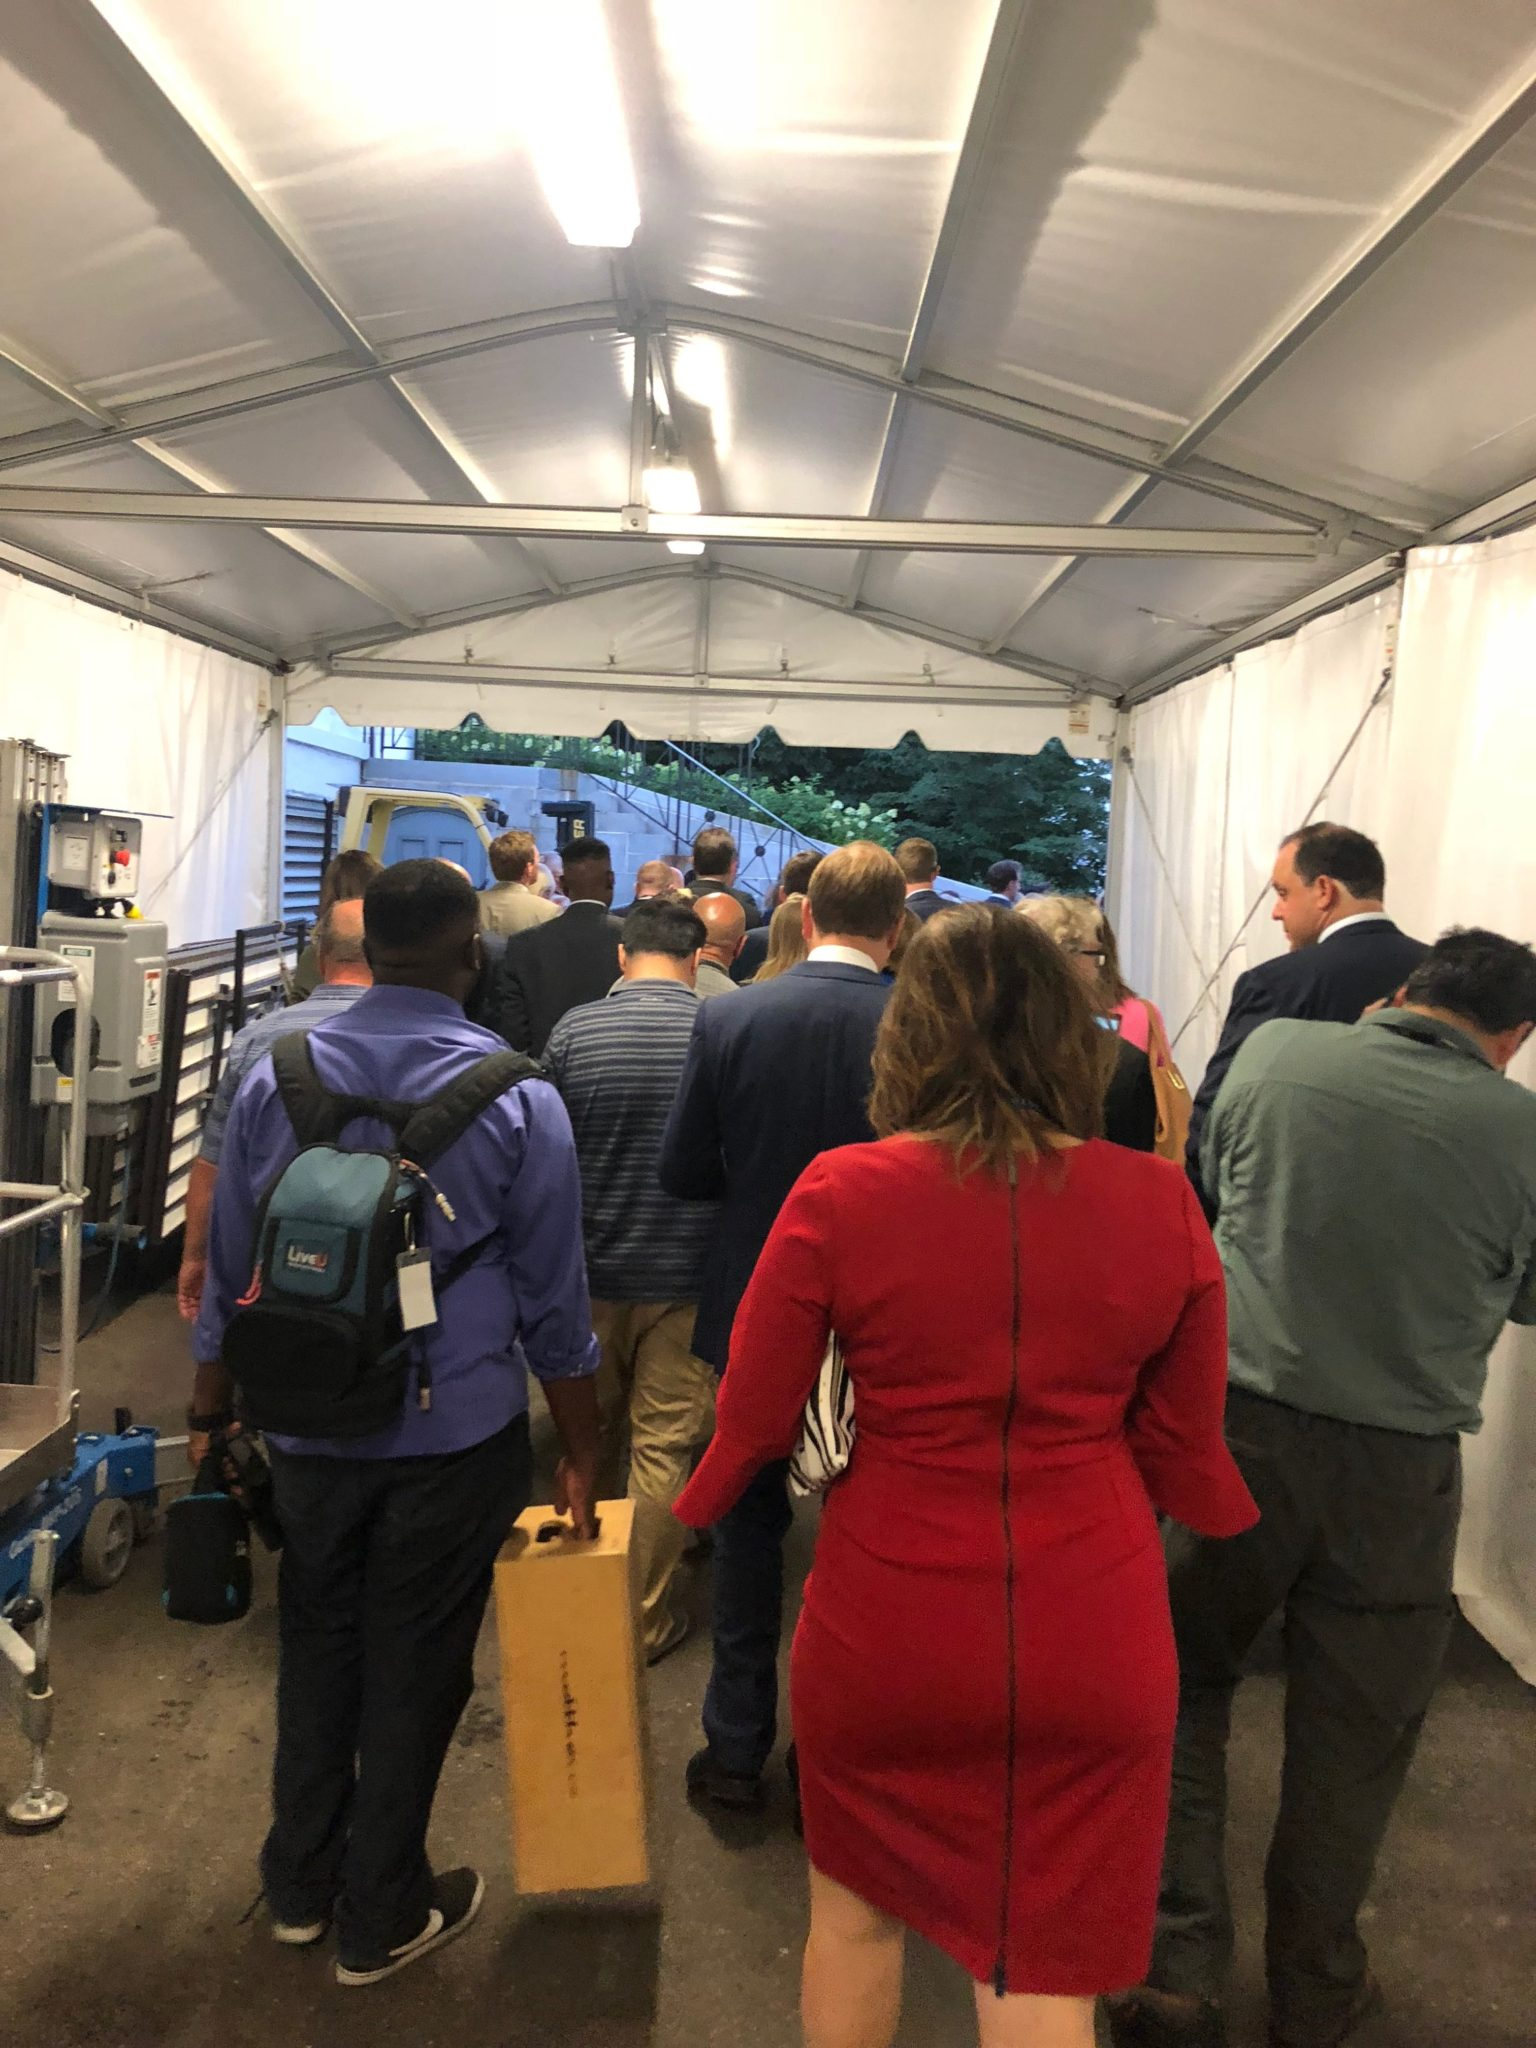 Reporters walk through the bowels of the White House to hear the SCOTUS nomination. Photo credit to Benny Johnson at The Daily Caller.